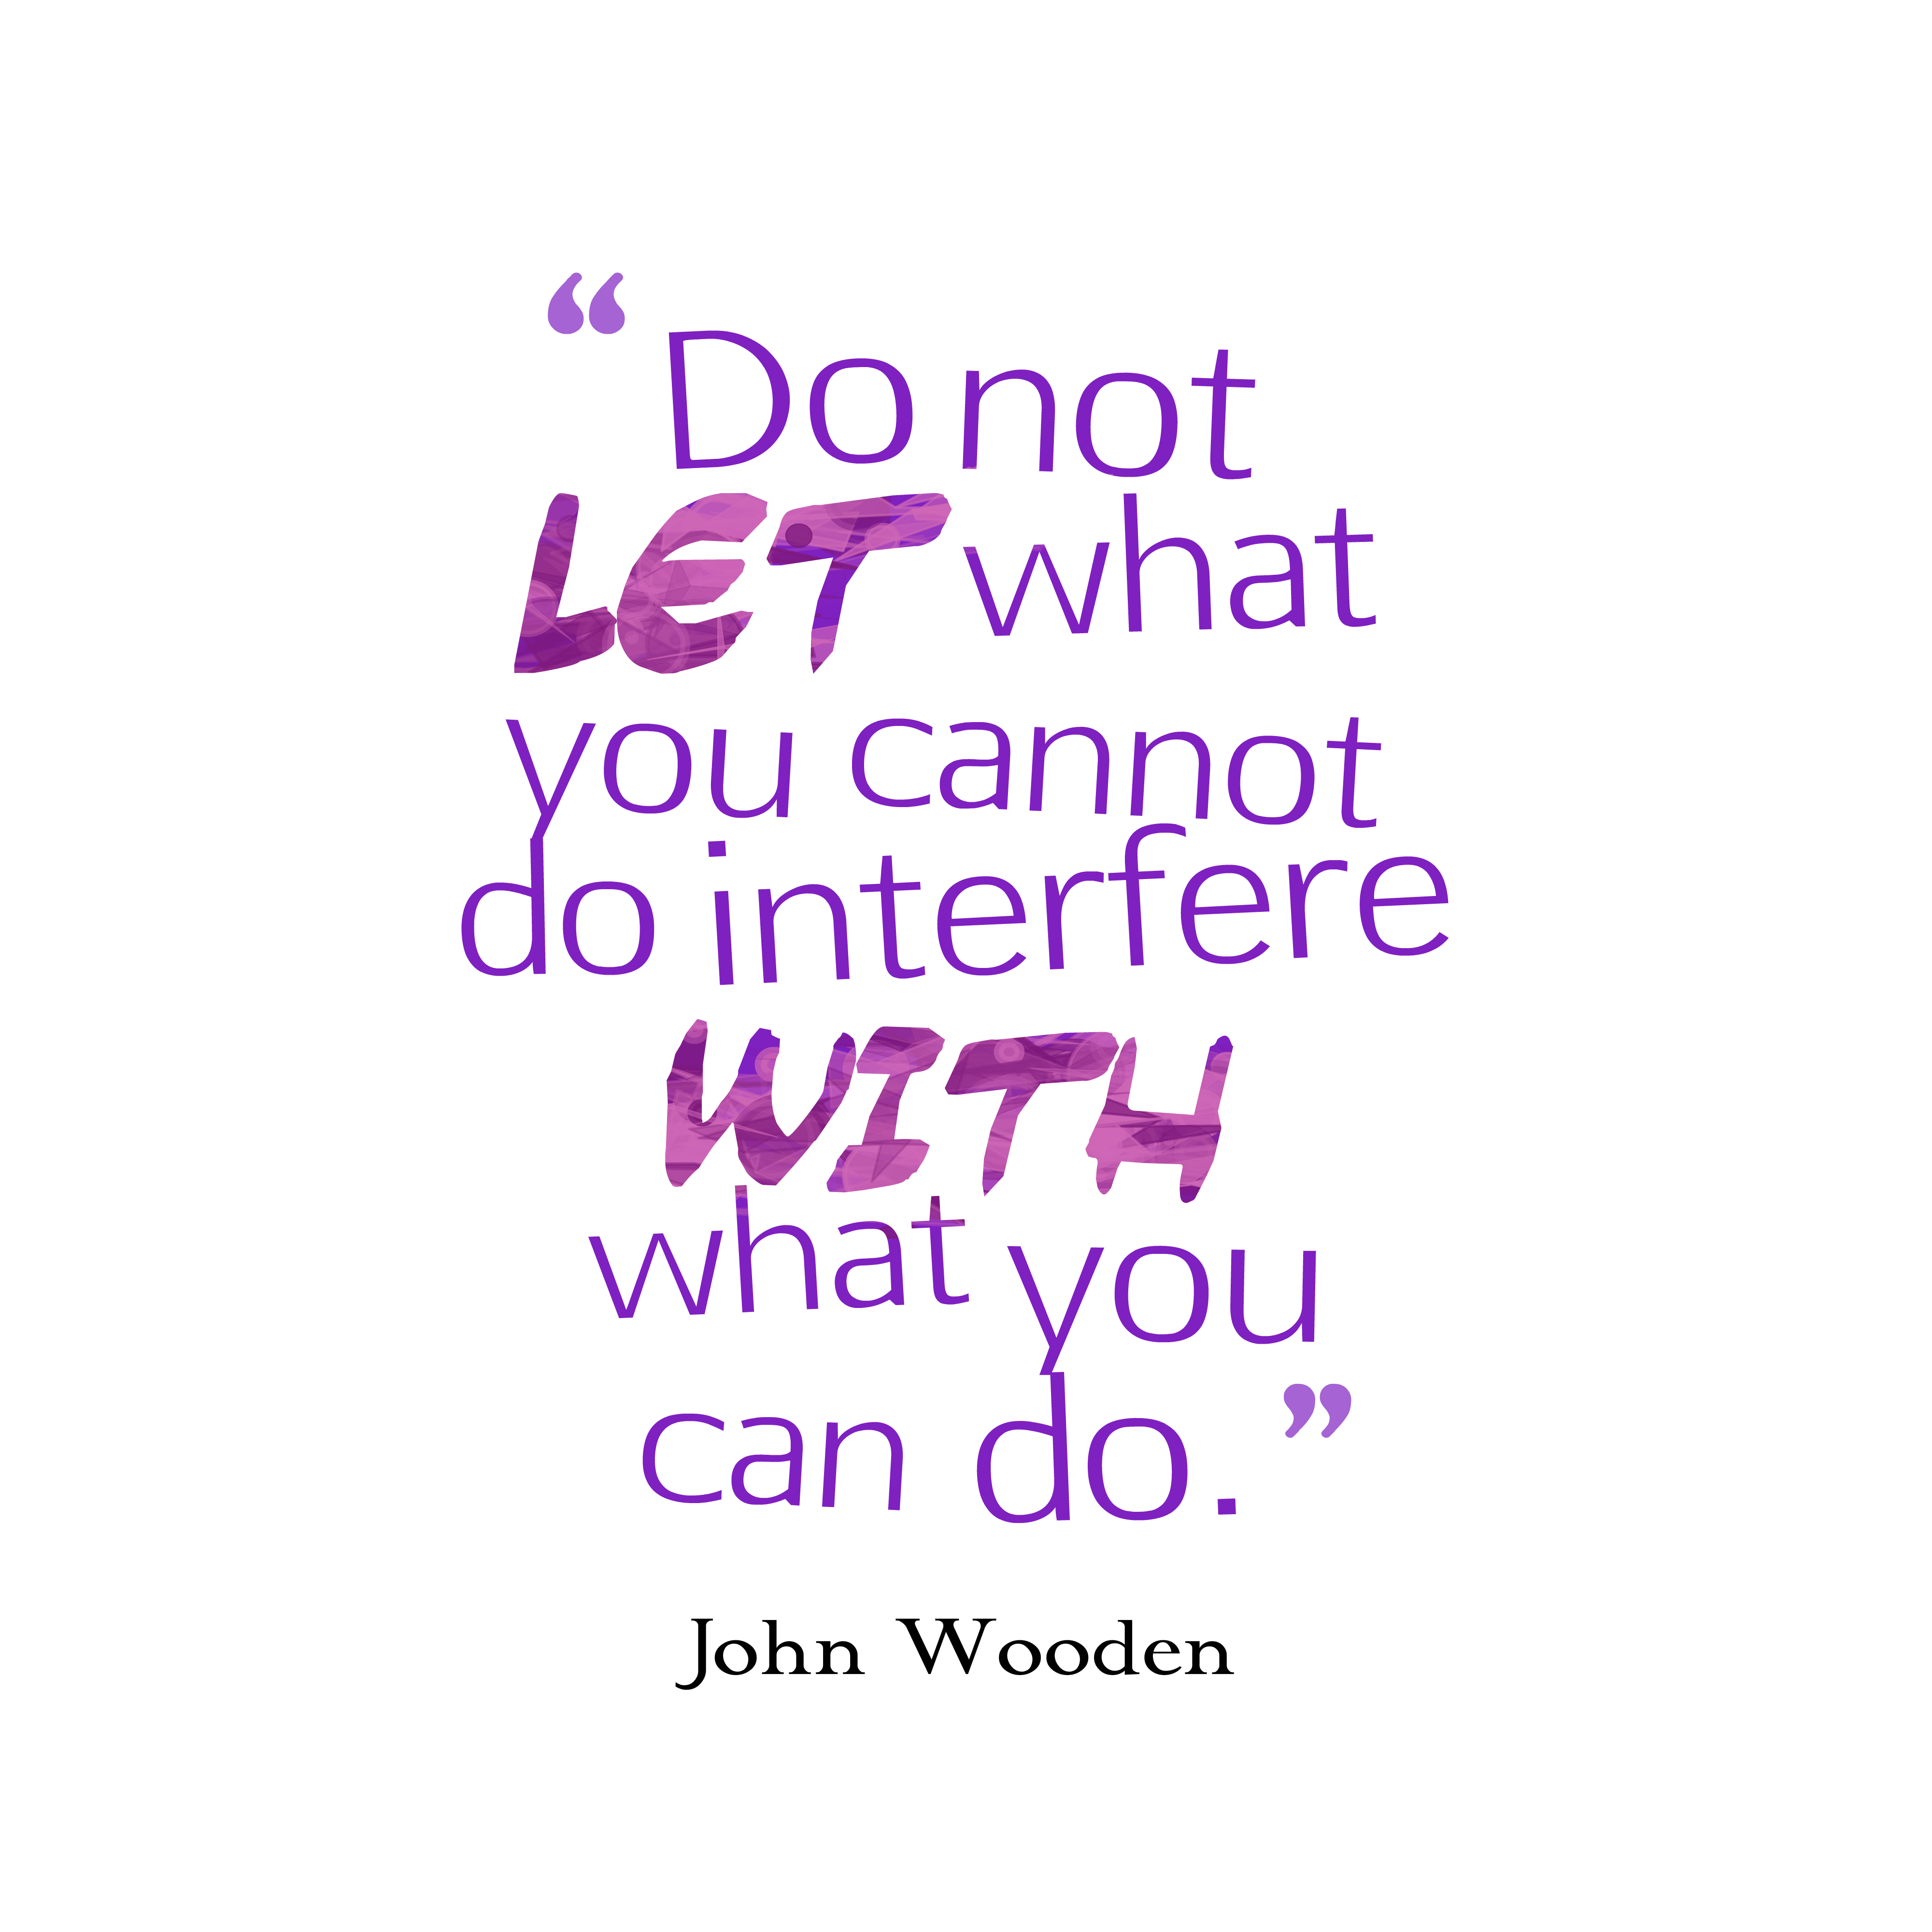 What You Cannot Be John Wooden Daily Quotes Sayings Pictures